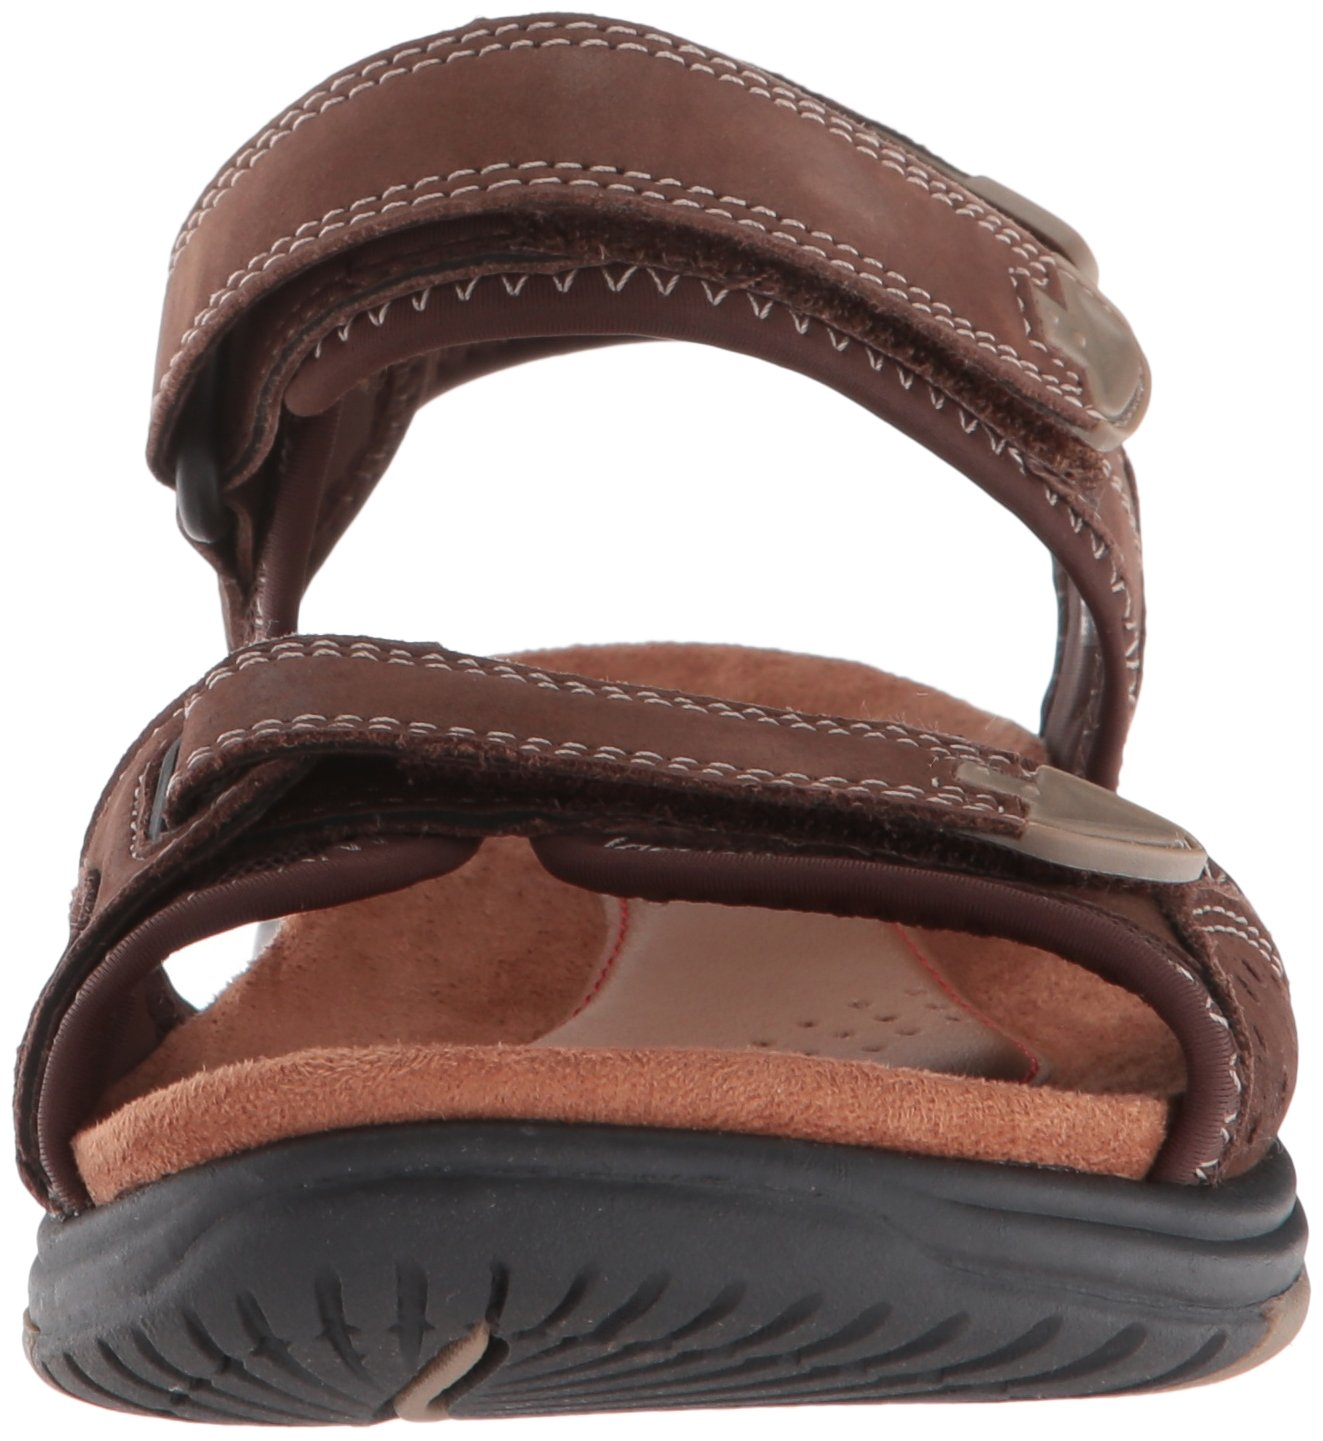 Rockport Women's Franklin Three Strap Sport Sandal B073ZV29PQ 7.5 W US|Brown